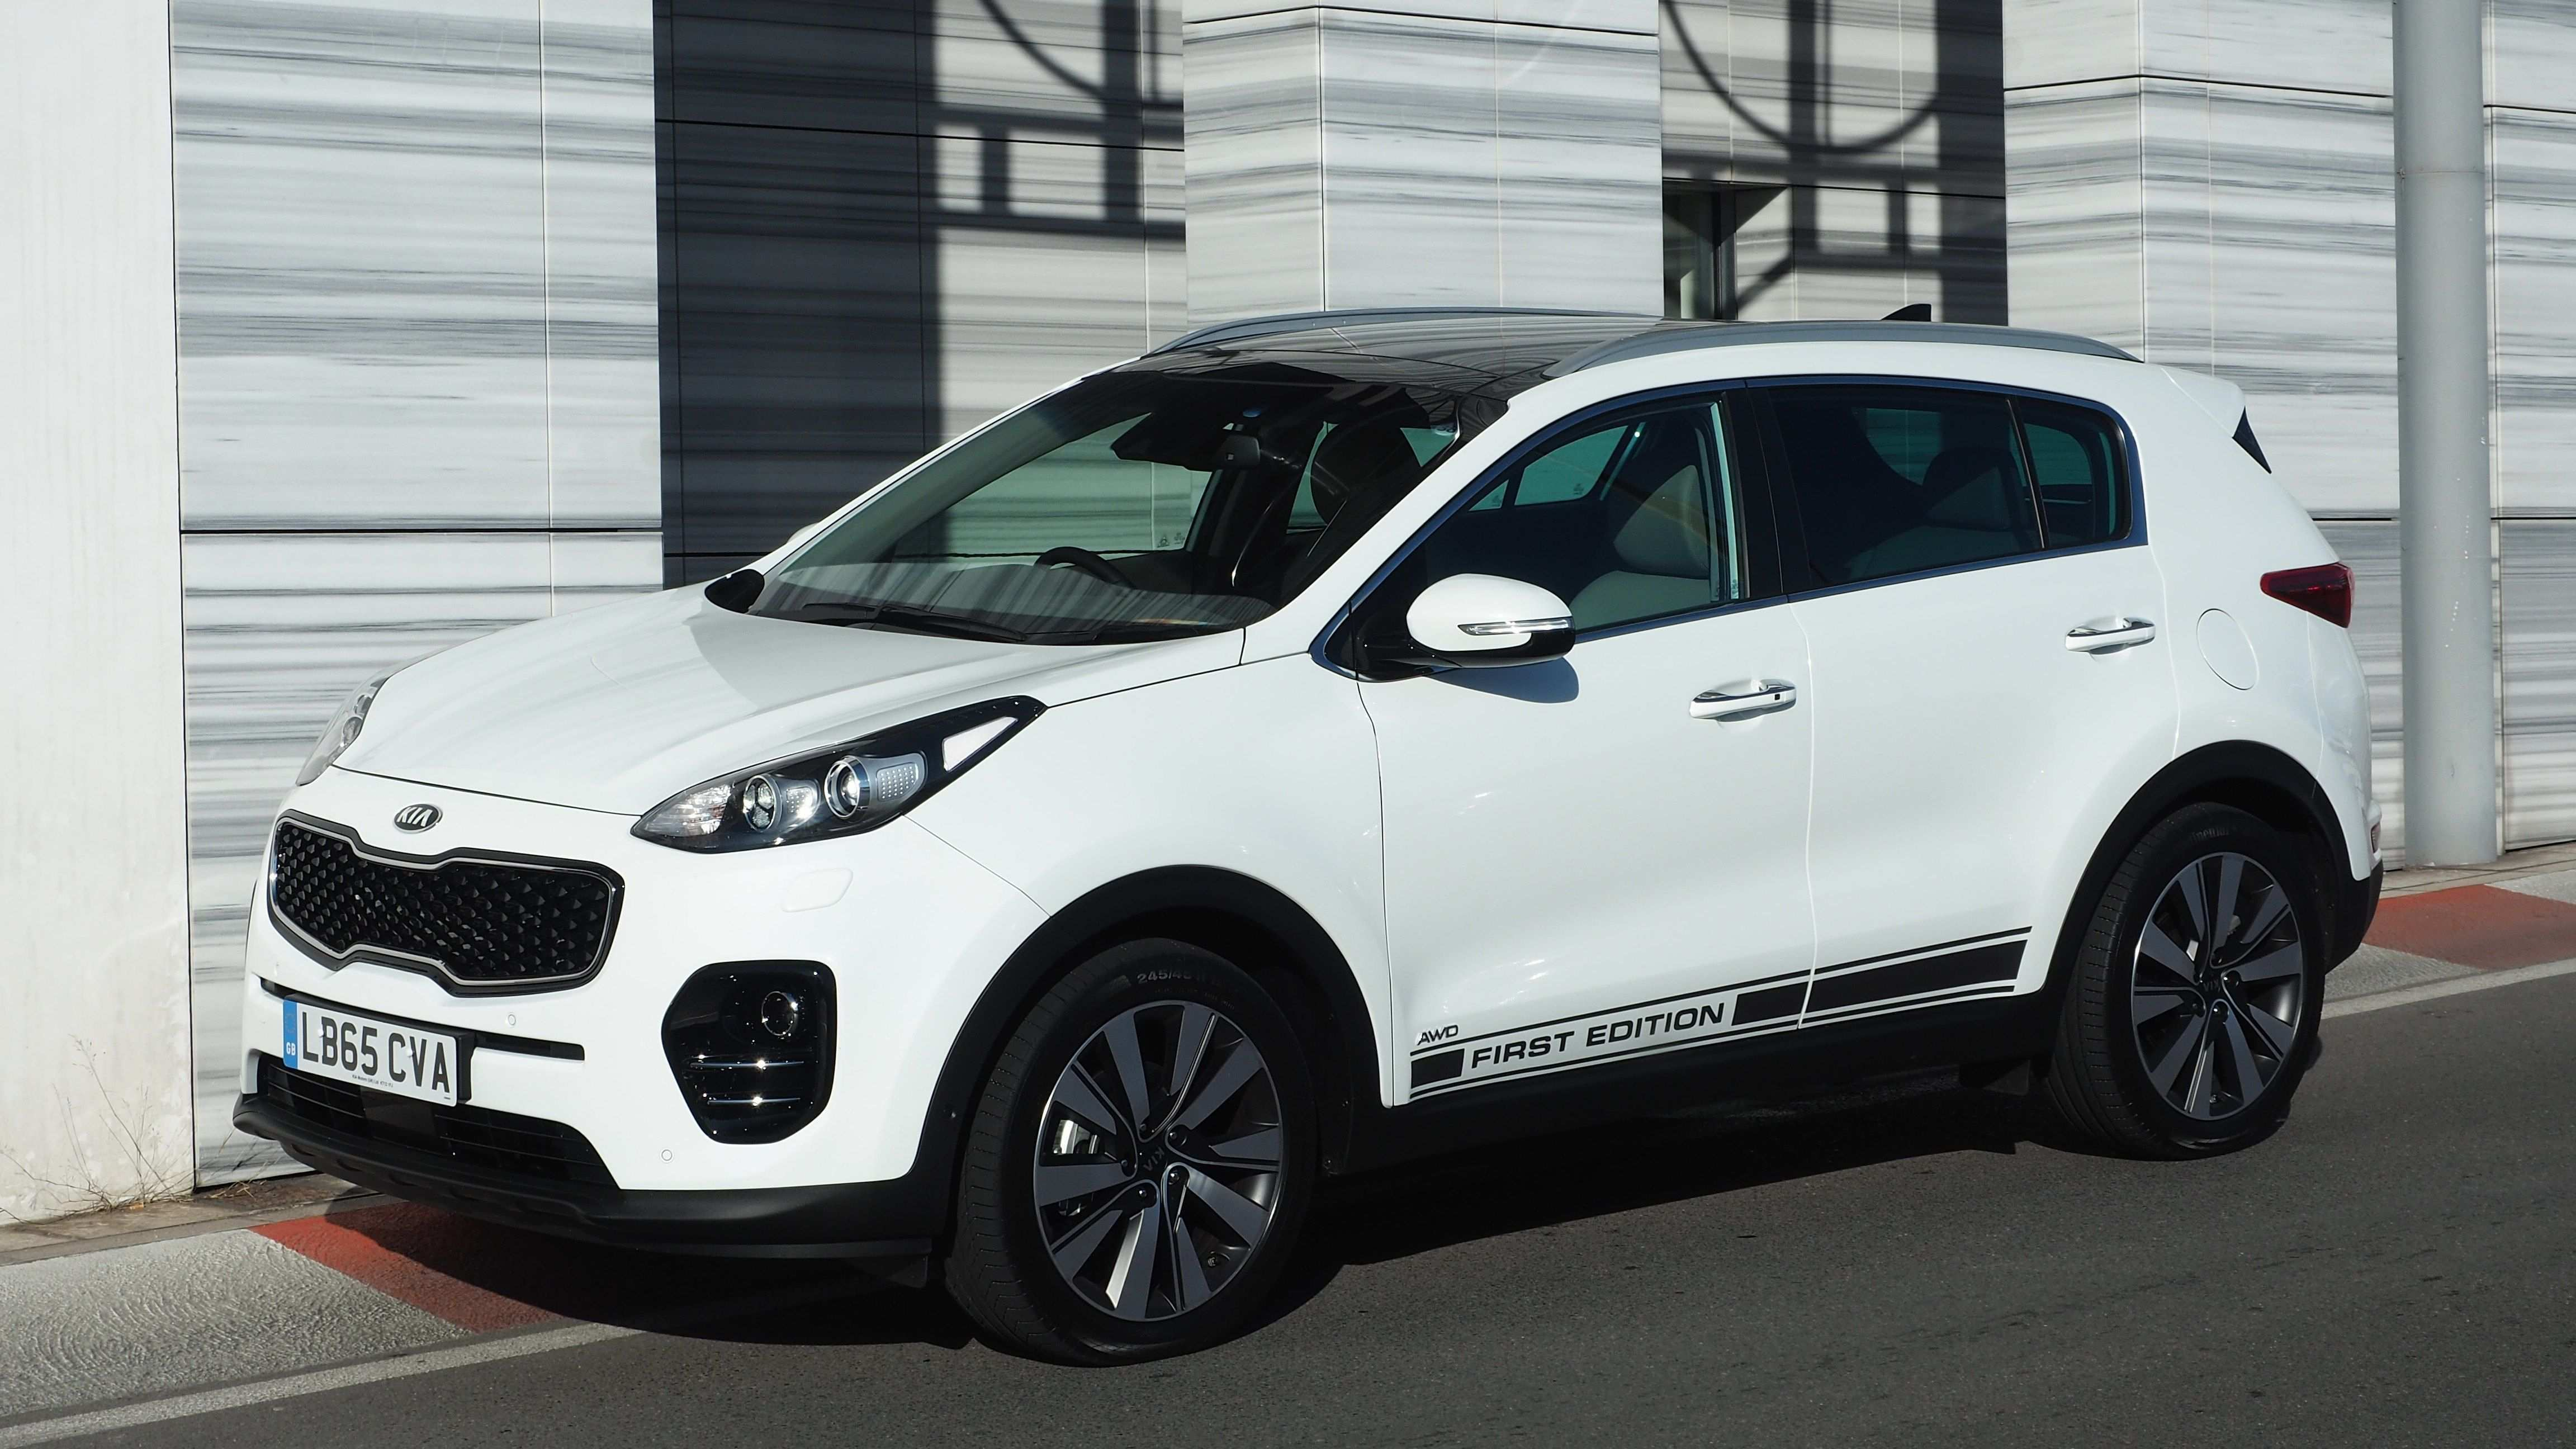 56 All New 2020 Kia Sportage Review New Review for 2020 Kia Sportage Review